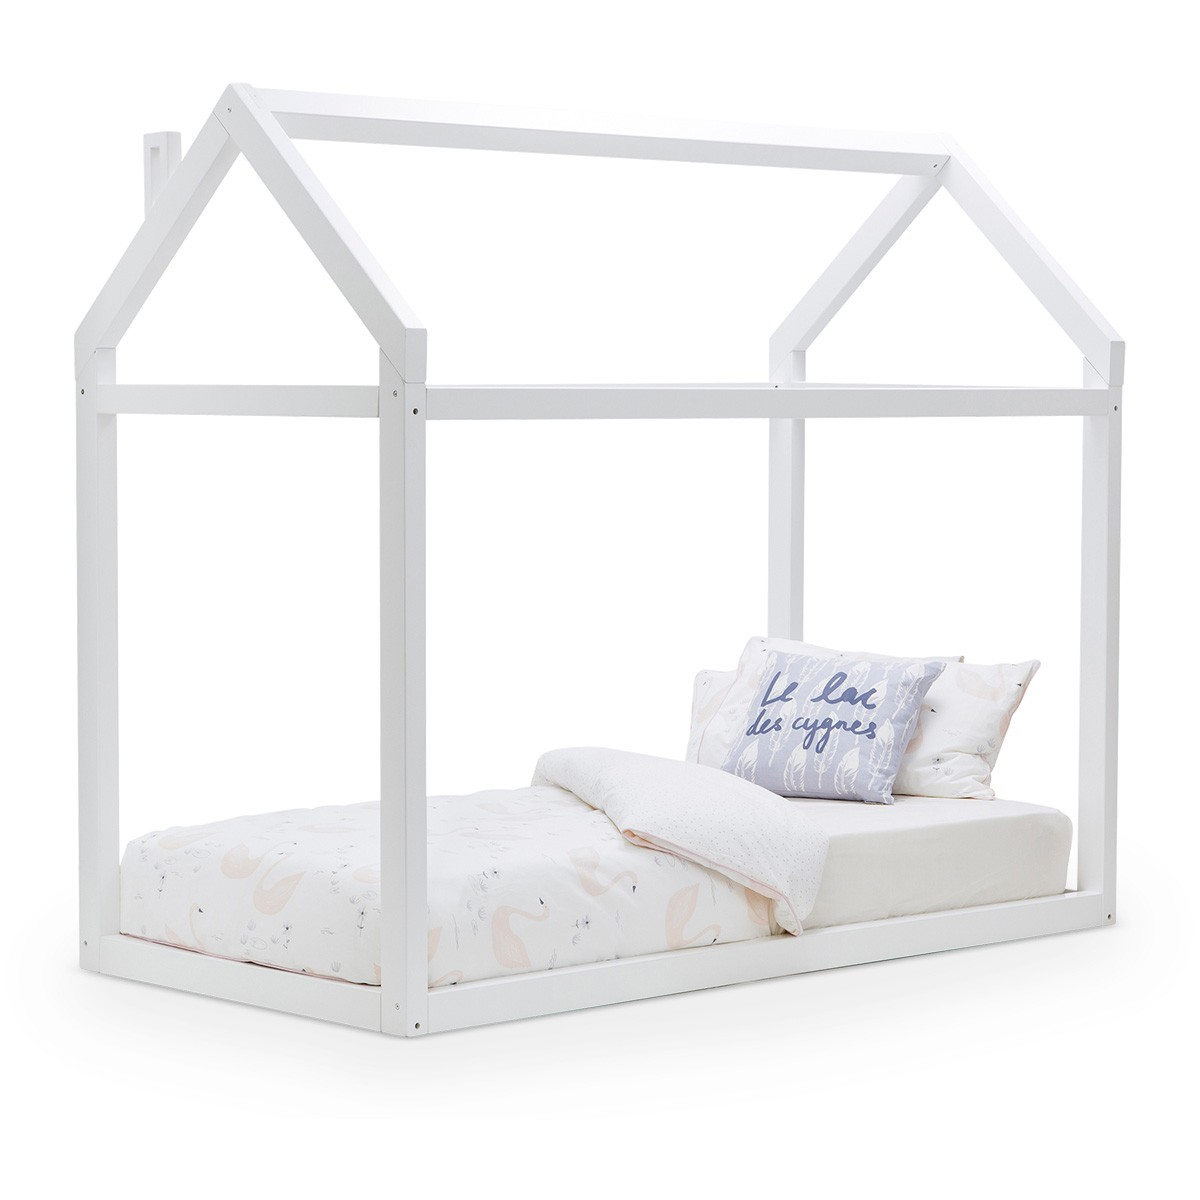 Attic Wooden Low Bed, Single, White